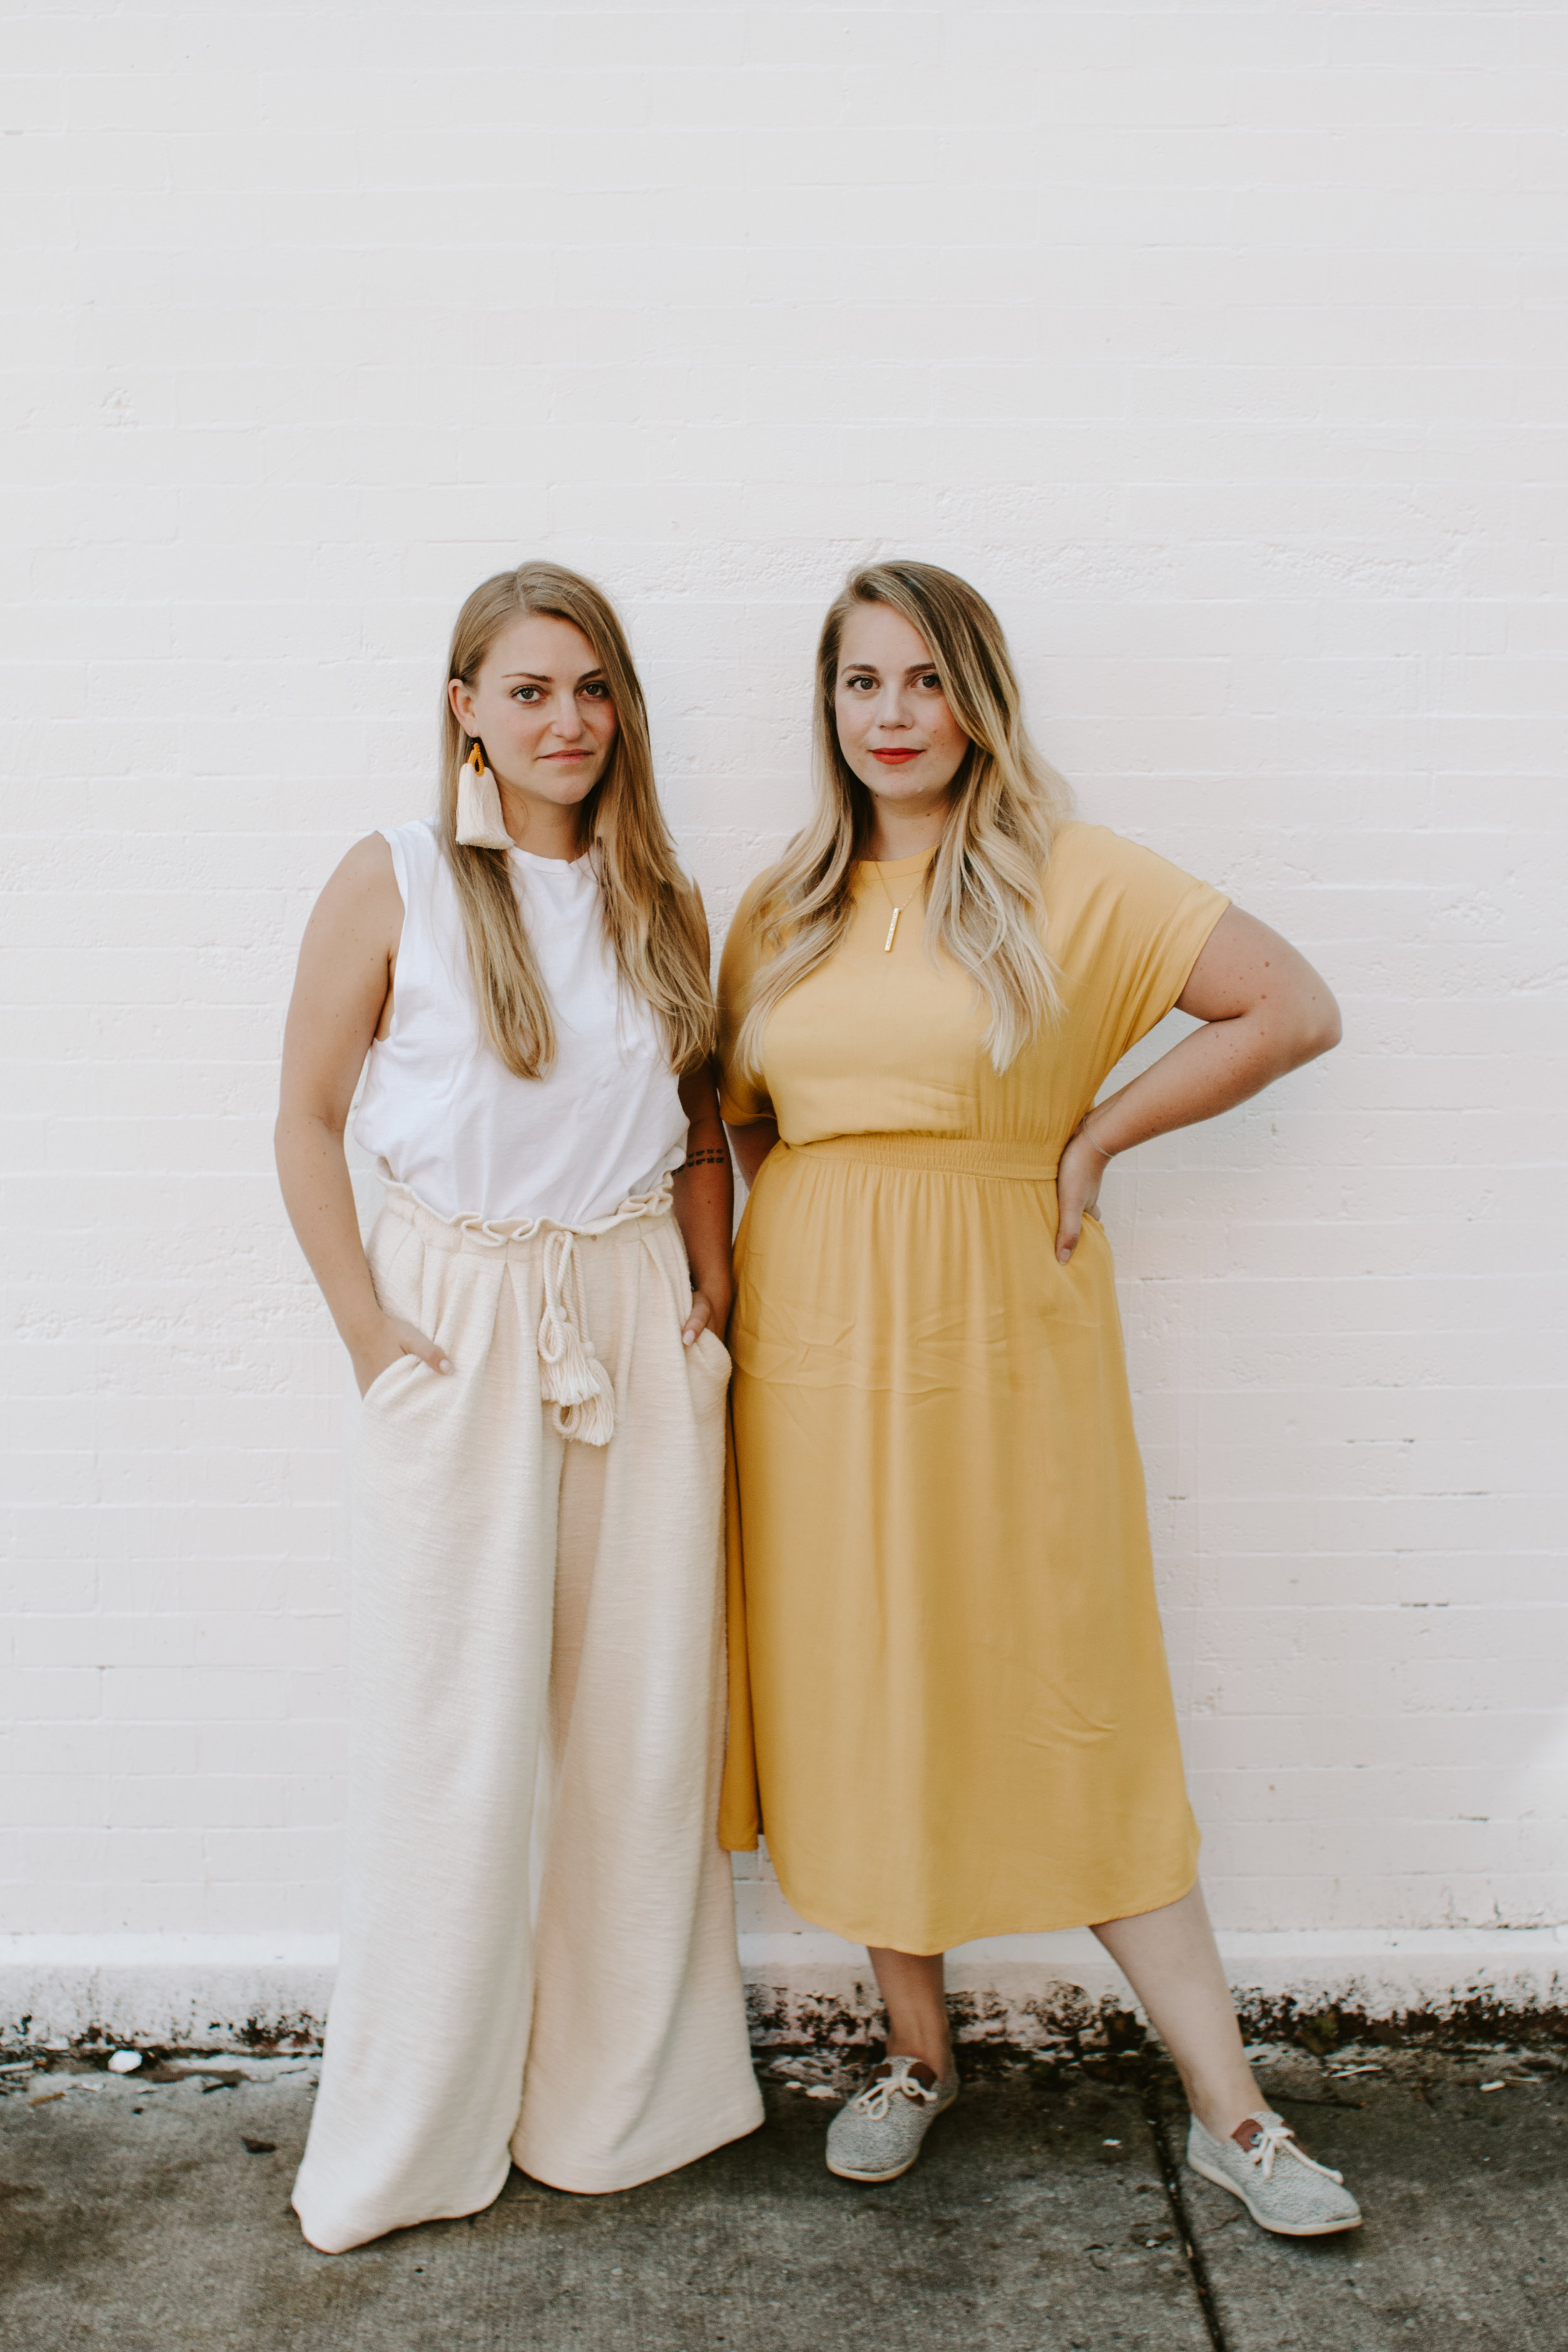 Meet Your WOTW Team- Kelsey + Mallory - Hi! We are Kelsey + Mallory, the creators of Week of the Website. We developed this service to address the questions we often face when talking with new clients. How long will this take? What do I need to be ready? How can I update this on my own? How tech savvy do I need to be? We understand what it is like to be on both sides of the development process having owned businesses before this separately. Our goal was simple: make this typically cumbersome and complicated process fun, easy, and 100% transparent. We bring hard work, humor and positivity to each of our projects, as well as years of experience building websites for entrepreneurs just like yourself.Want to see our other work in production & consulting? Check out Presence Agency →